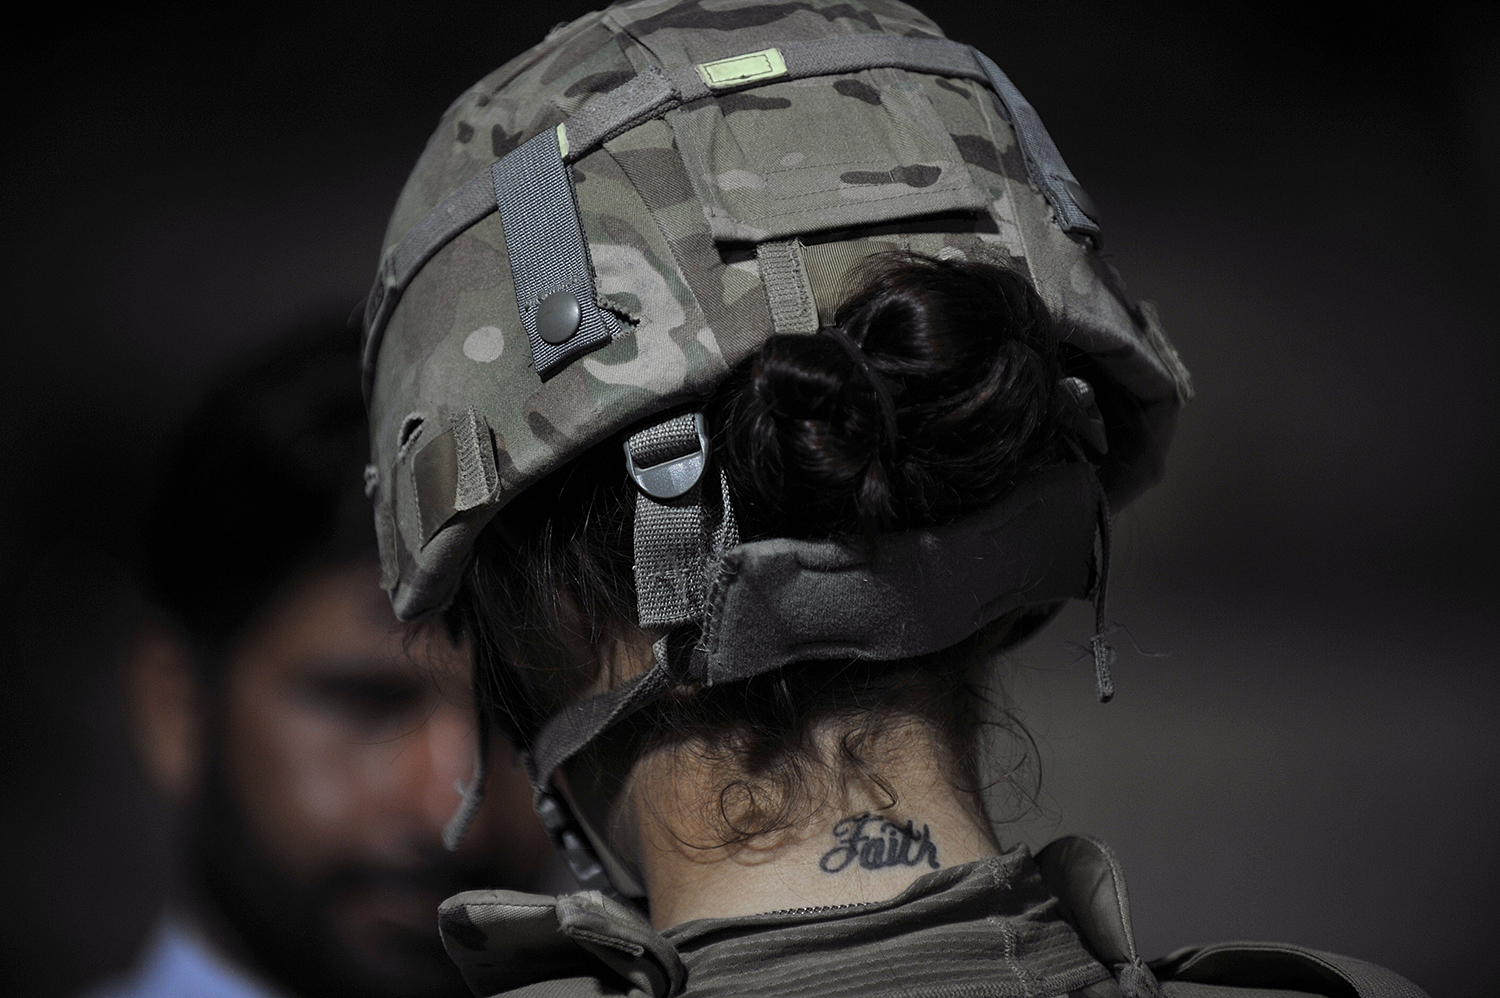 A U.S. Army soldier uses an Automated Biometric Identification System during a mission in Turkham Nangarhar bordering with Pakistan on Sept. 28, 2011. (Tausee Mustafa/AFP via Getty Images)